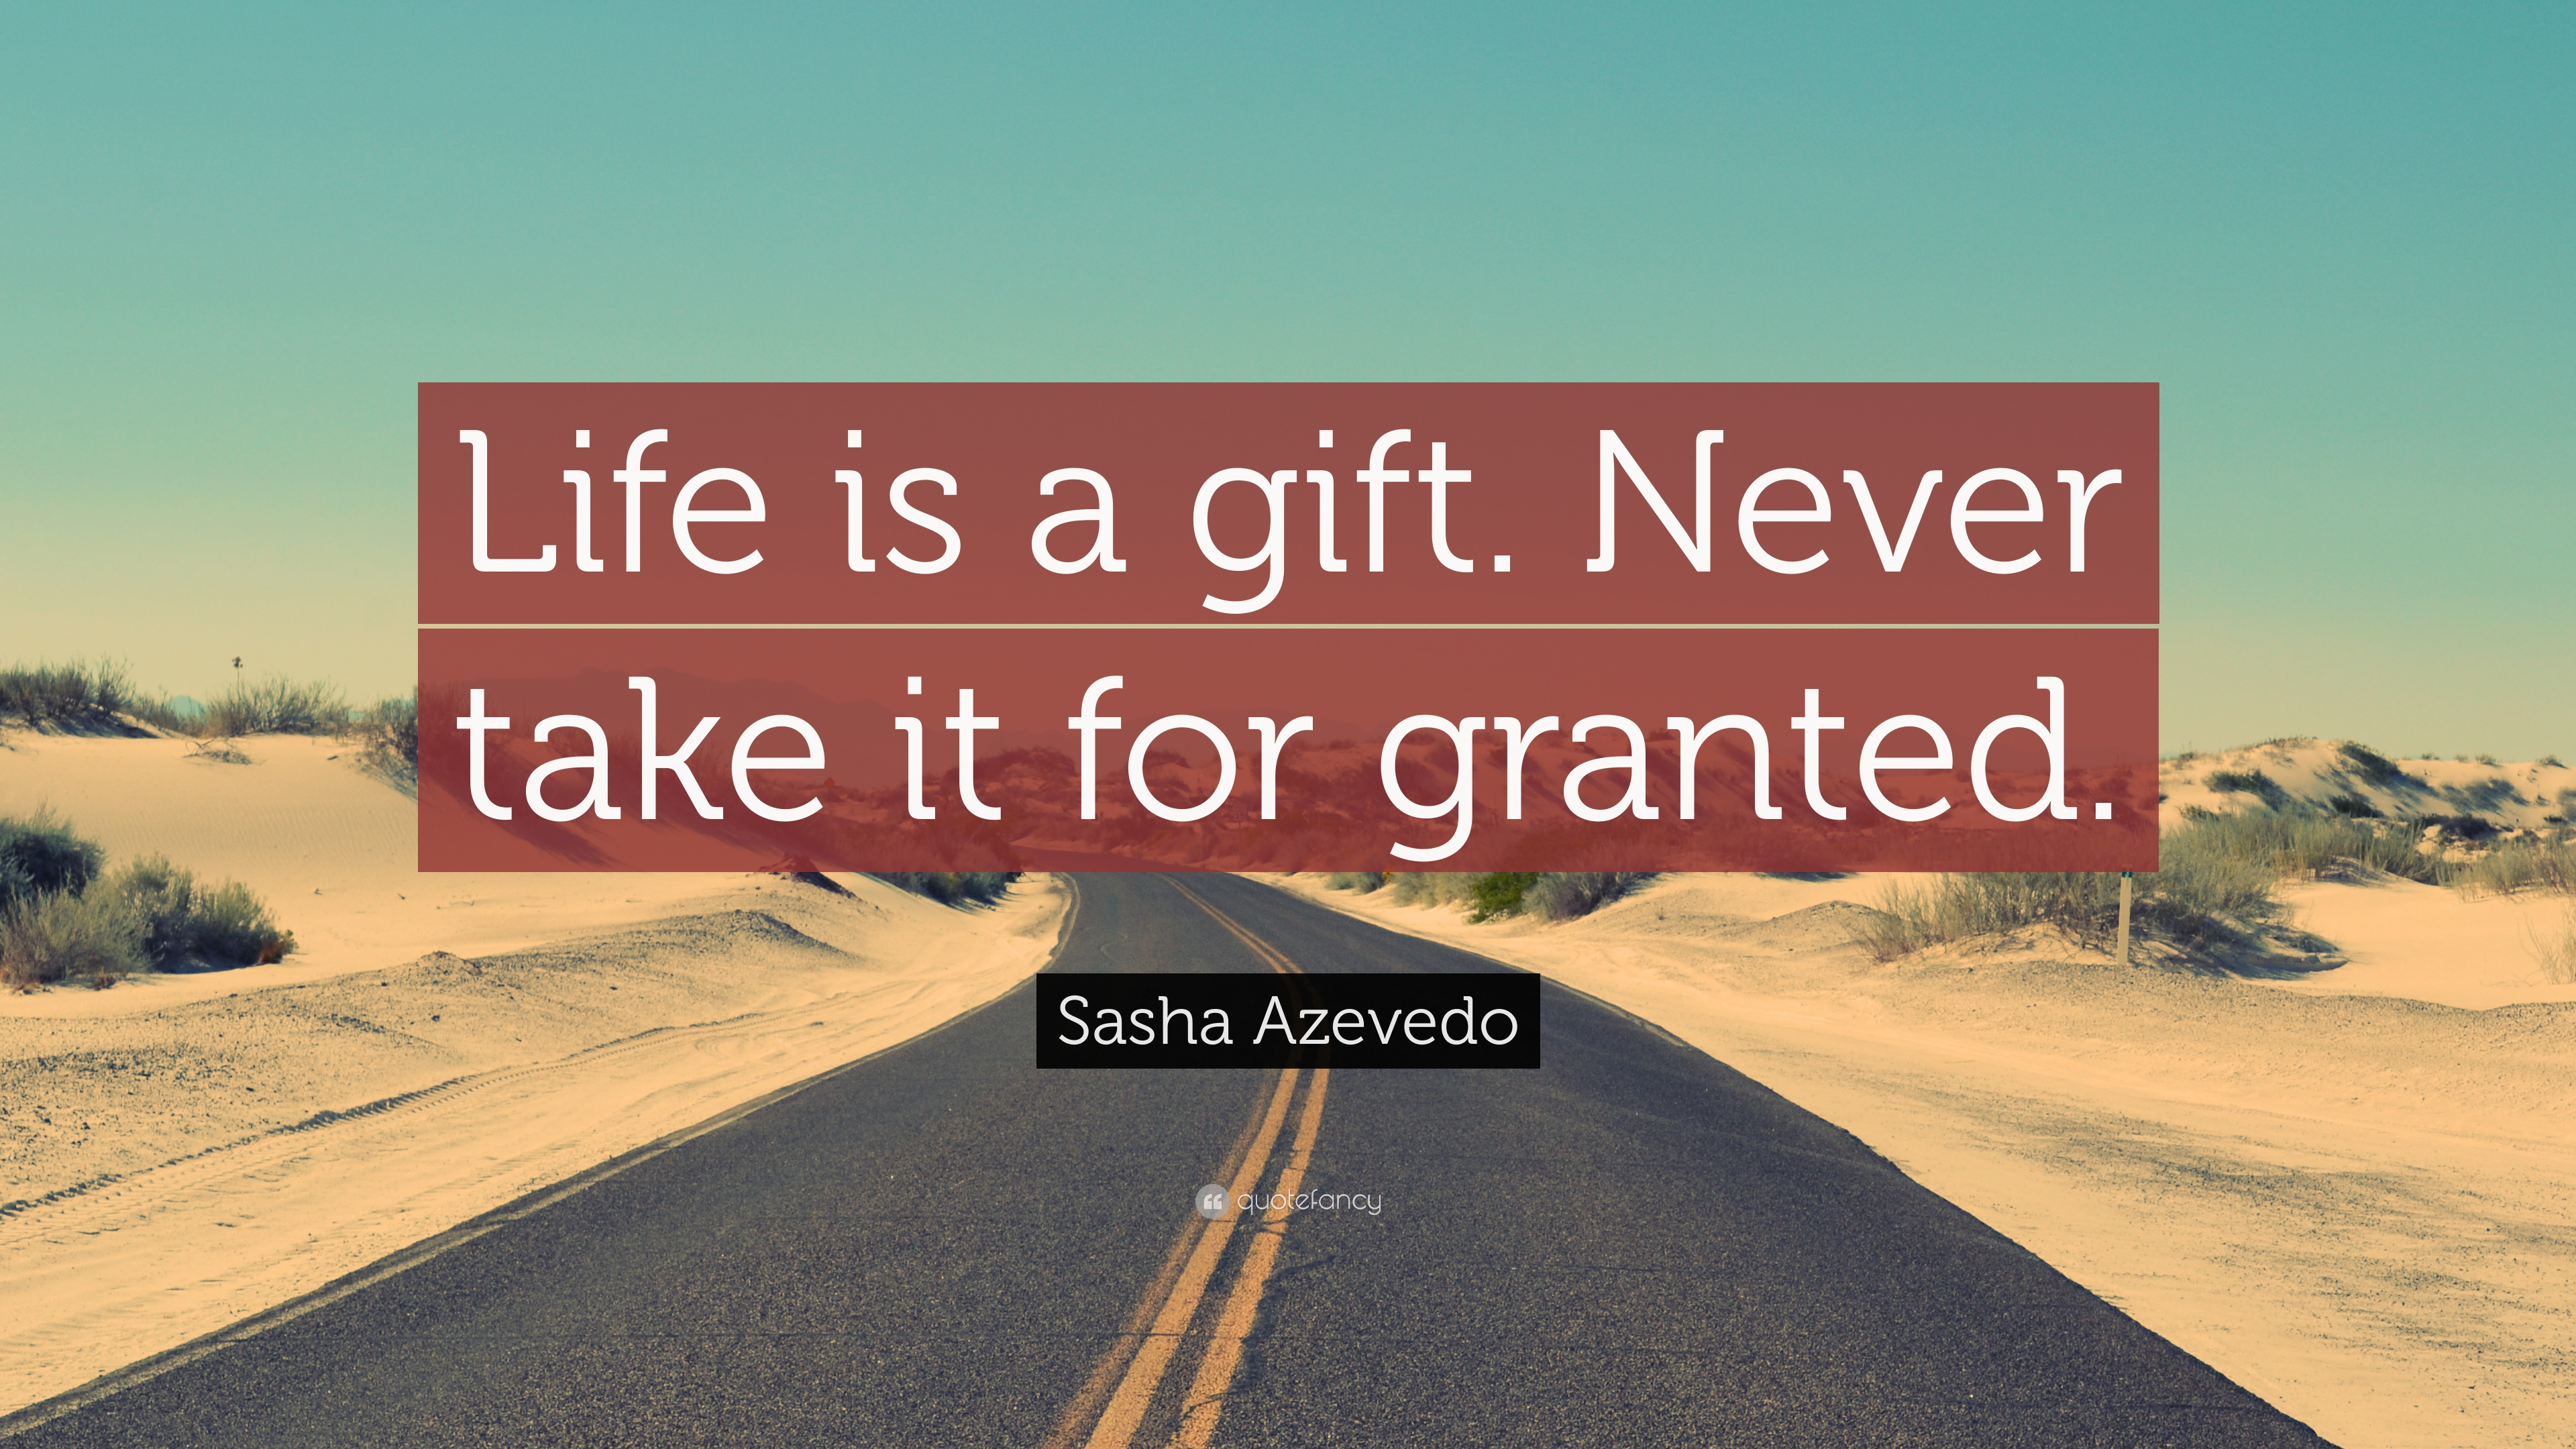 Granted Quotes Wallpaper Sasha Azevedo Quote Life Is A Gift Never Take It For